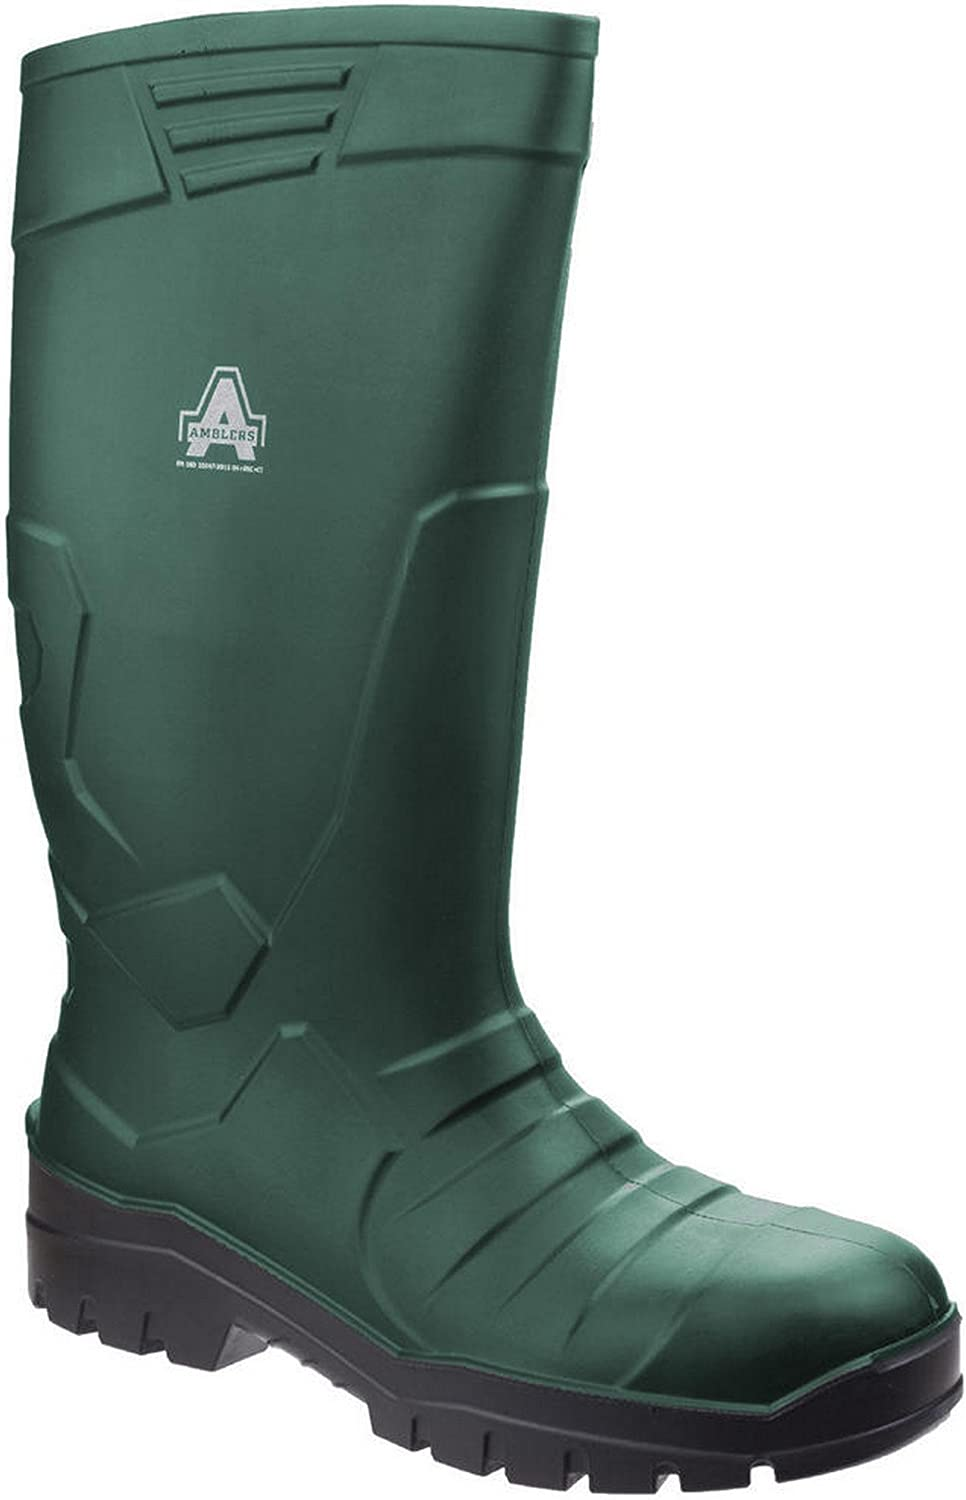 Amblers Safety Unisex Adults Teviot Heavy Duty Wellington Boots